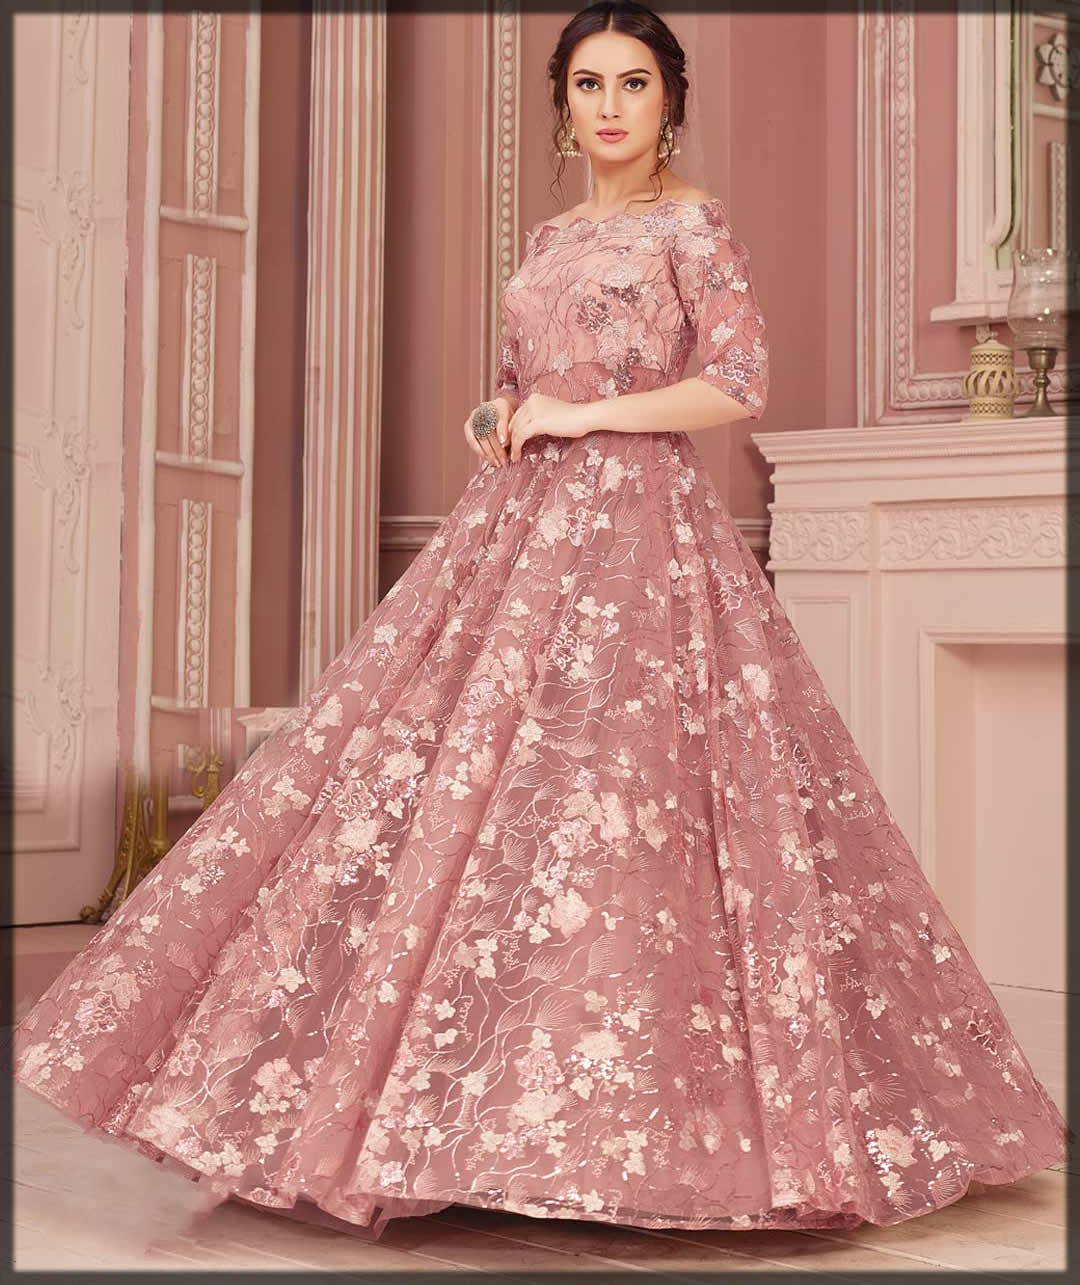 rose pink ball gown